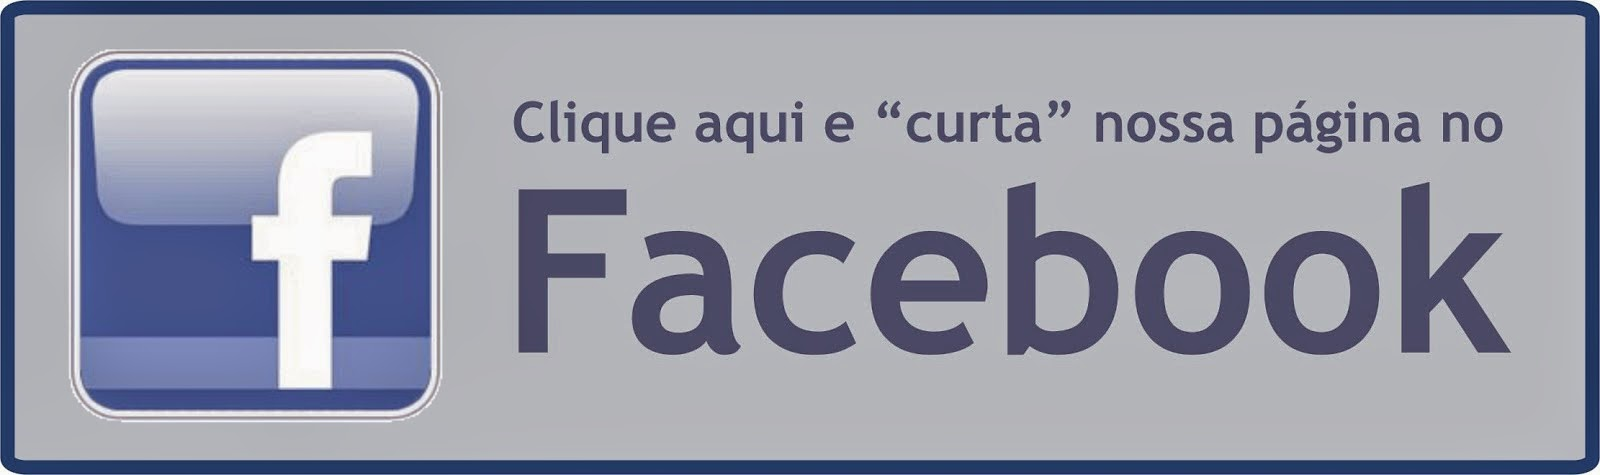 Estamos no Facebook!